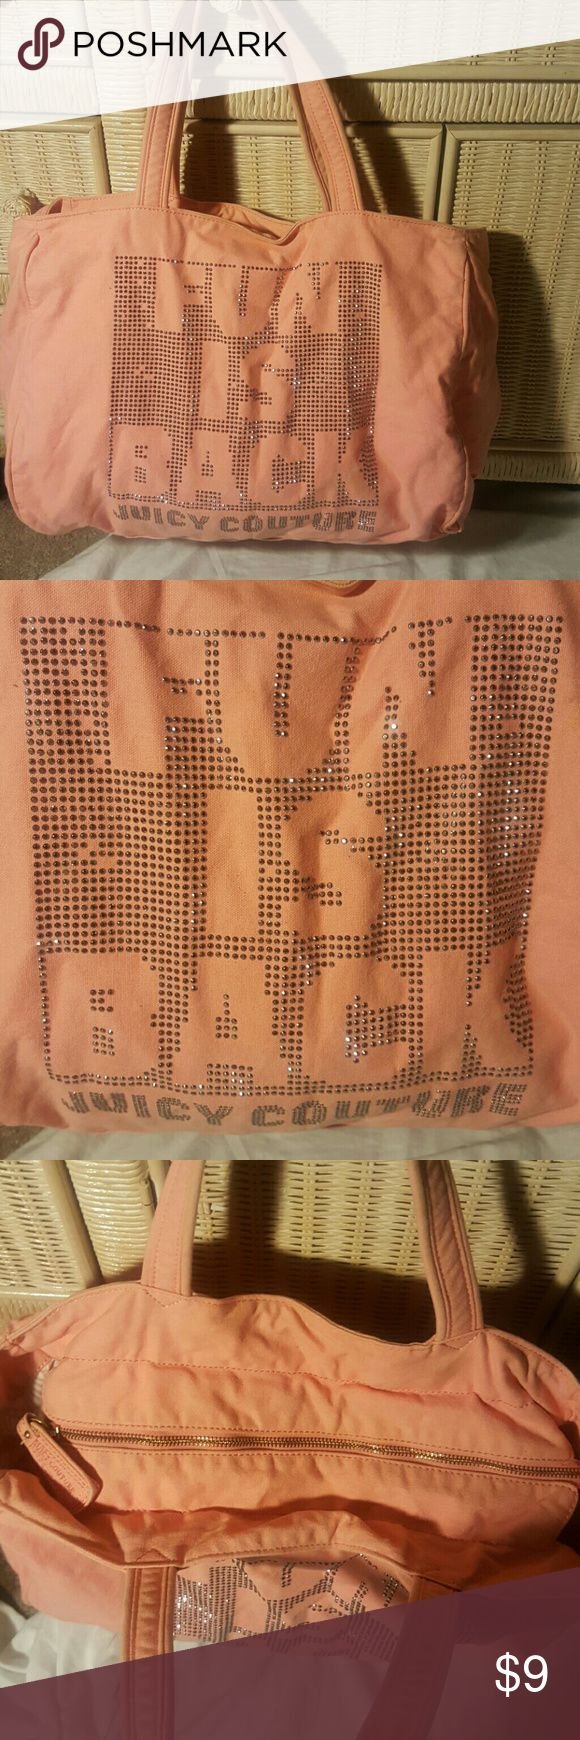 Juicy Couture denim zip up tote bag Peach color used denim bag, bling with a slight distressed look some fading and discolorations from wash and wesr but cute and the condition is still good. Juicy Couture Bags Shoulder Bags